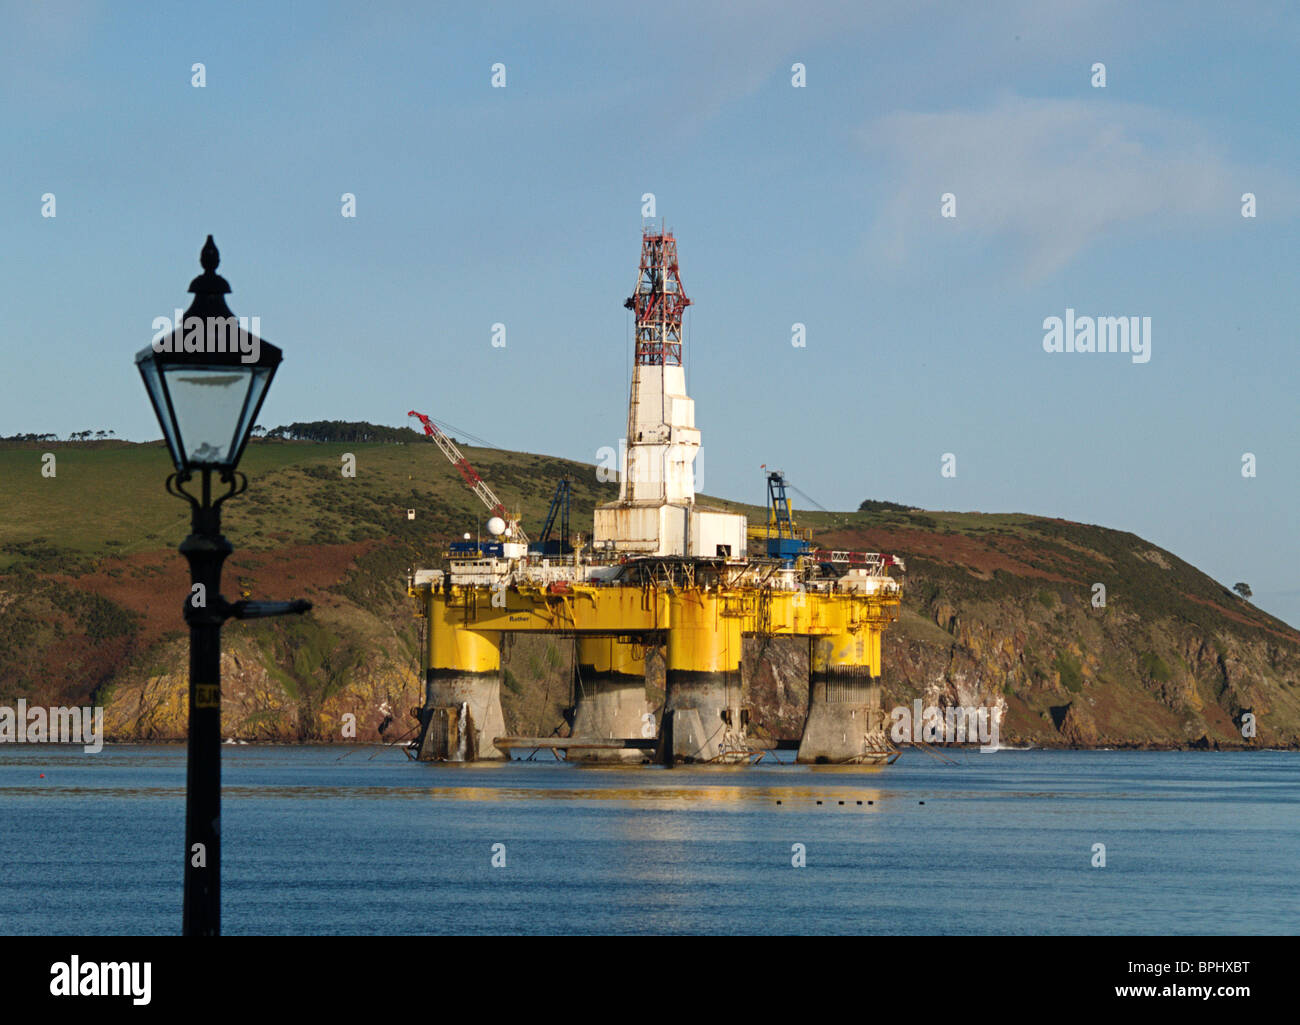 The semi-submersible Oil Drilling rig Transocean Rather moored in the Cromarty Firth, Scotland, framed by an street lamp Stock Photo